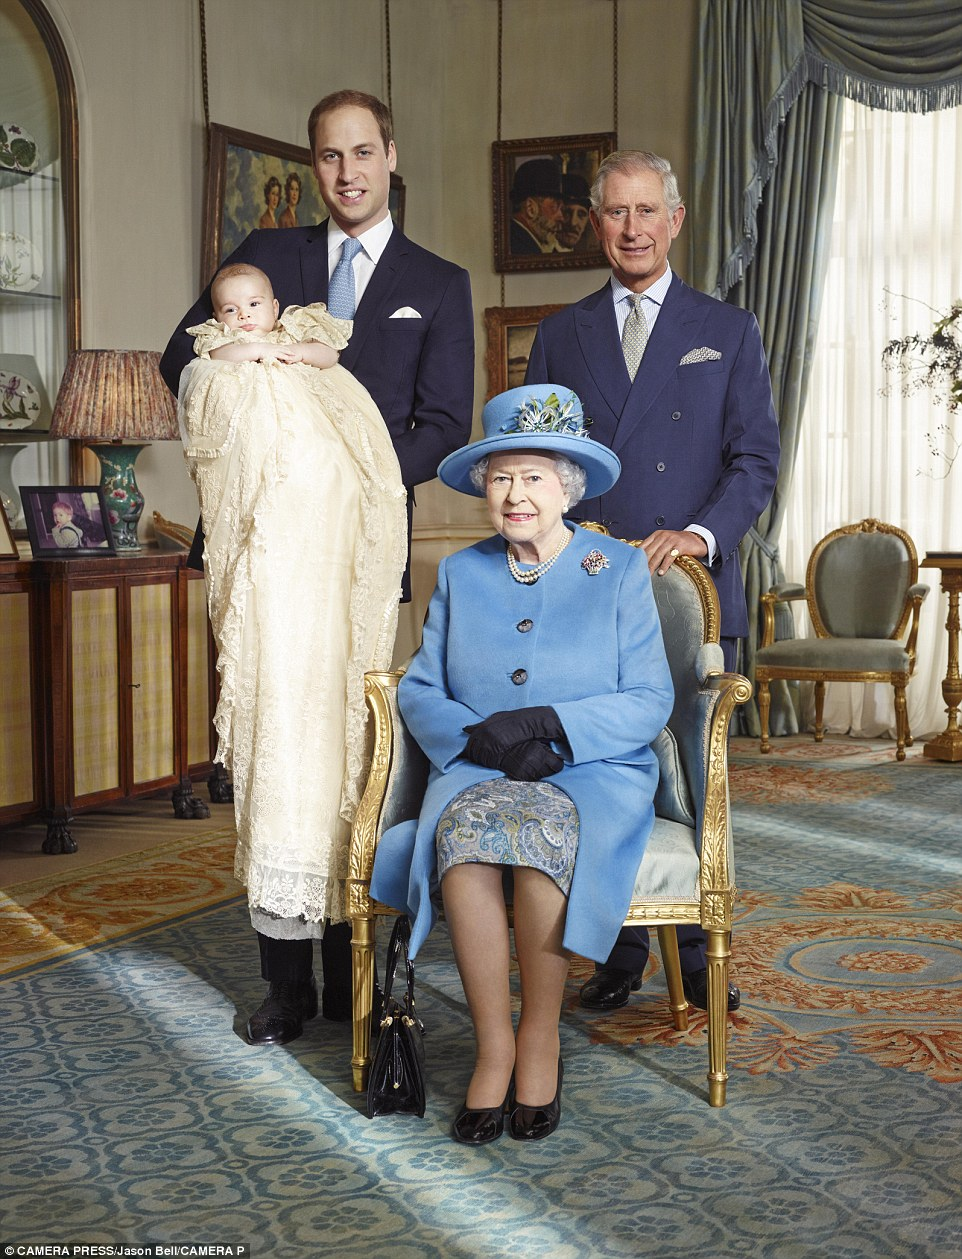 2013: The birth of Prince George in 2013, meant their were three direct heirs to the throne. Pictured alongside her at the young prince's christening were Prince Charles and Prince William